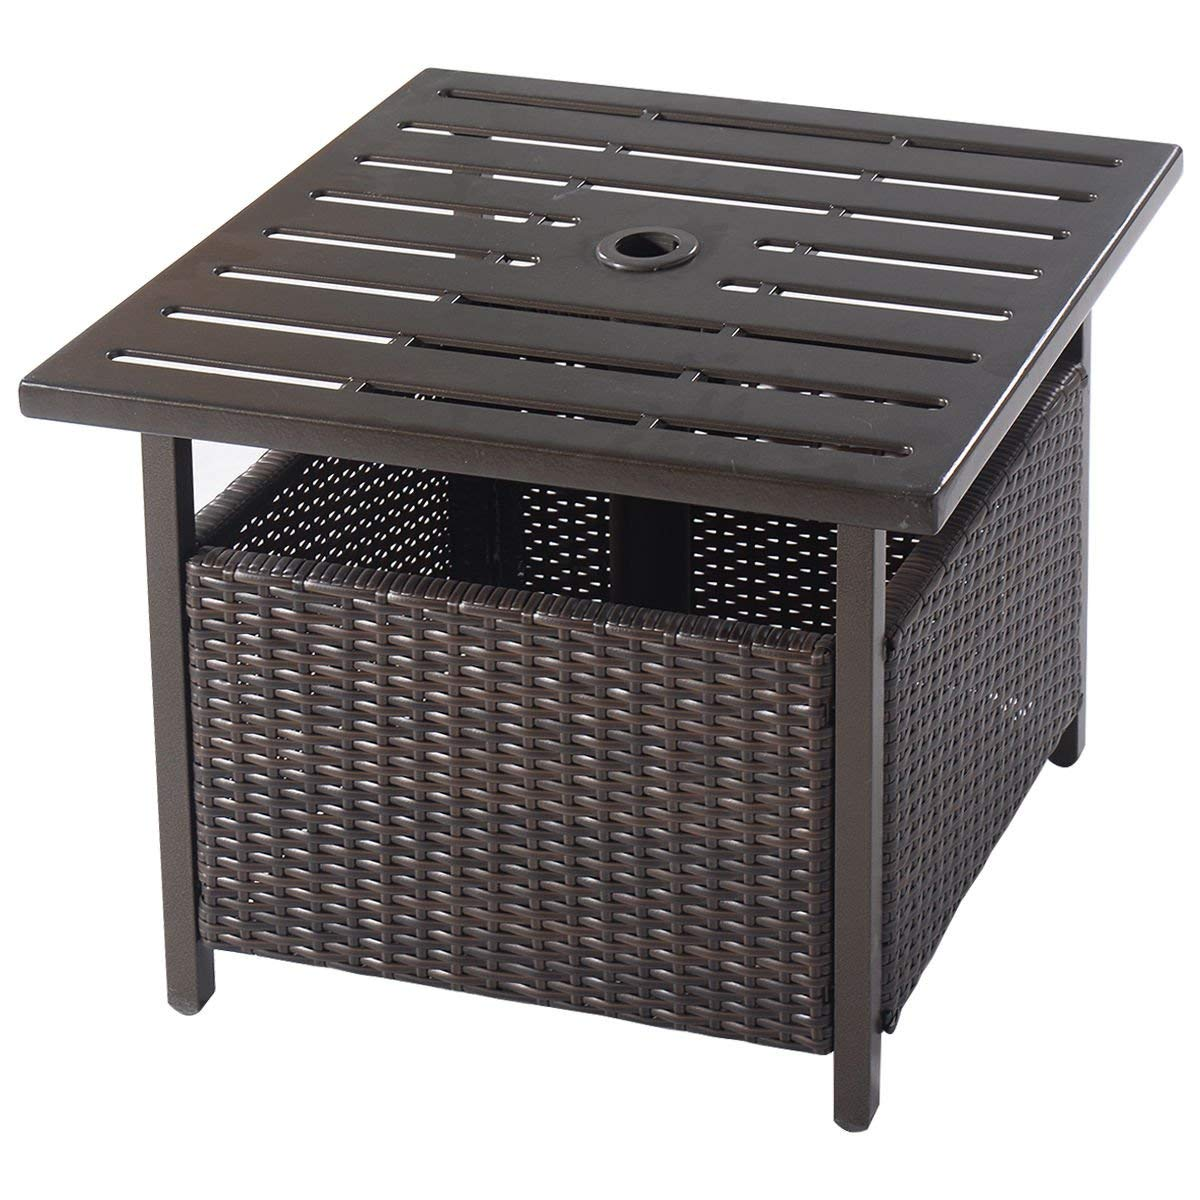 side table outdoor furniture deck garden patio pool with drawer rattan wicker steel brown small navy cast iron frame tall hall piece coffee sets under west elm bench black and